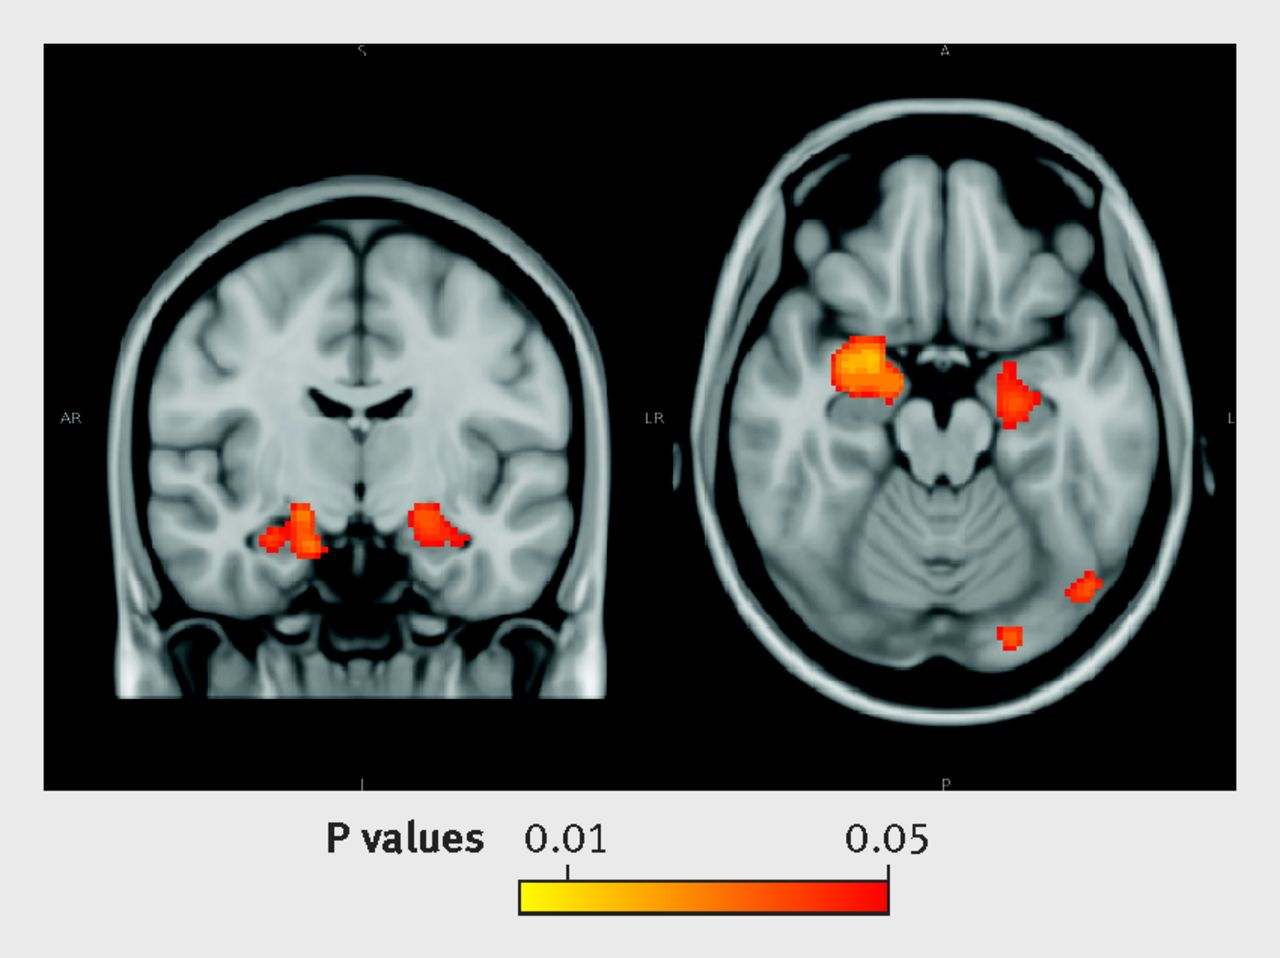 Moderate Alcohol Consumption As Risk Factor For Adverse Brain Outcomes And Cognitive Decline